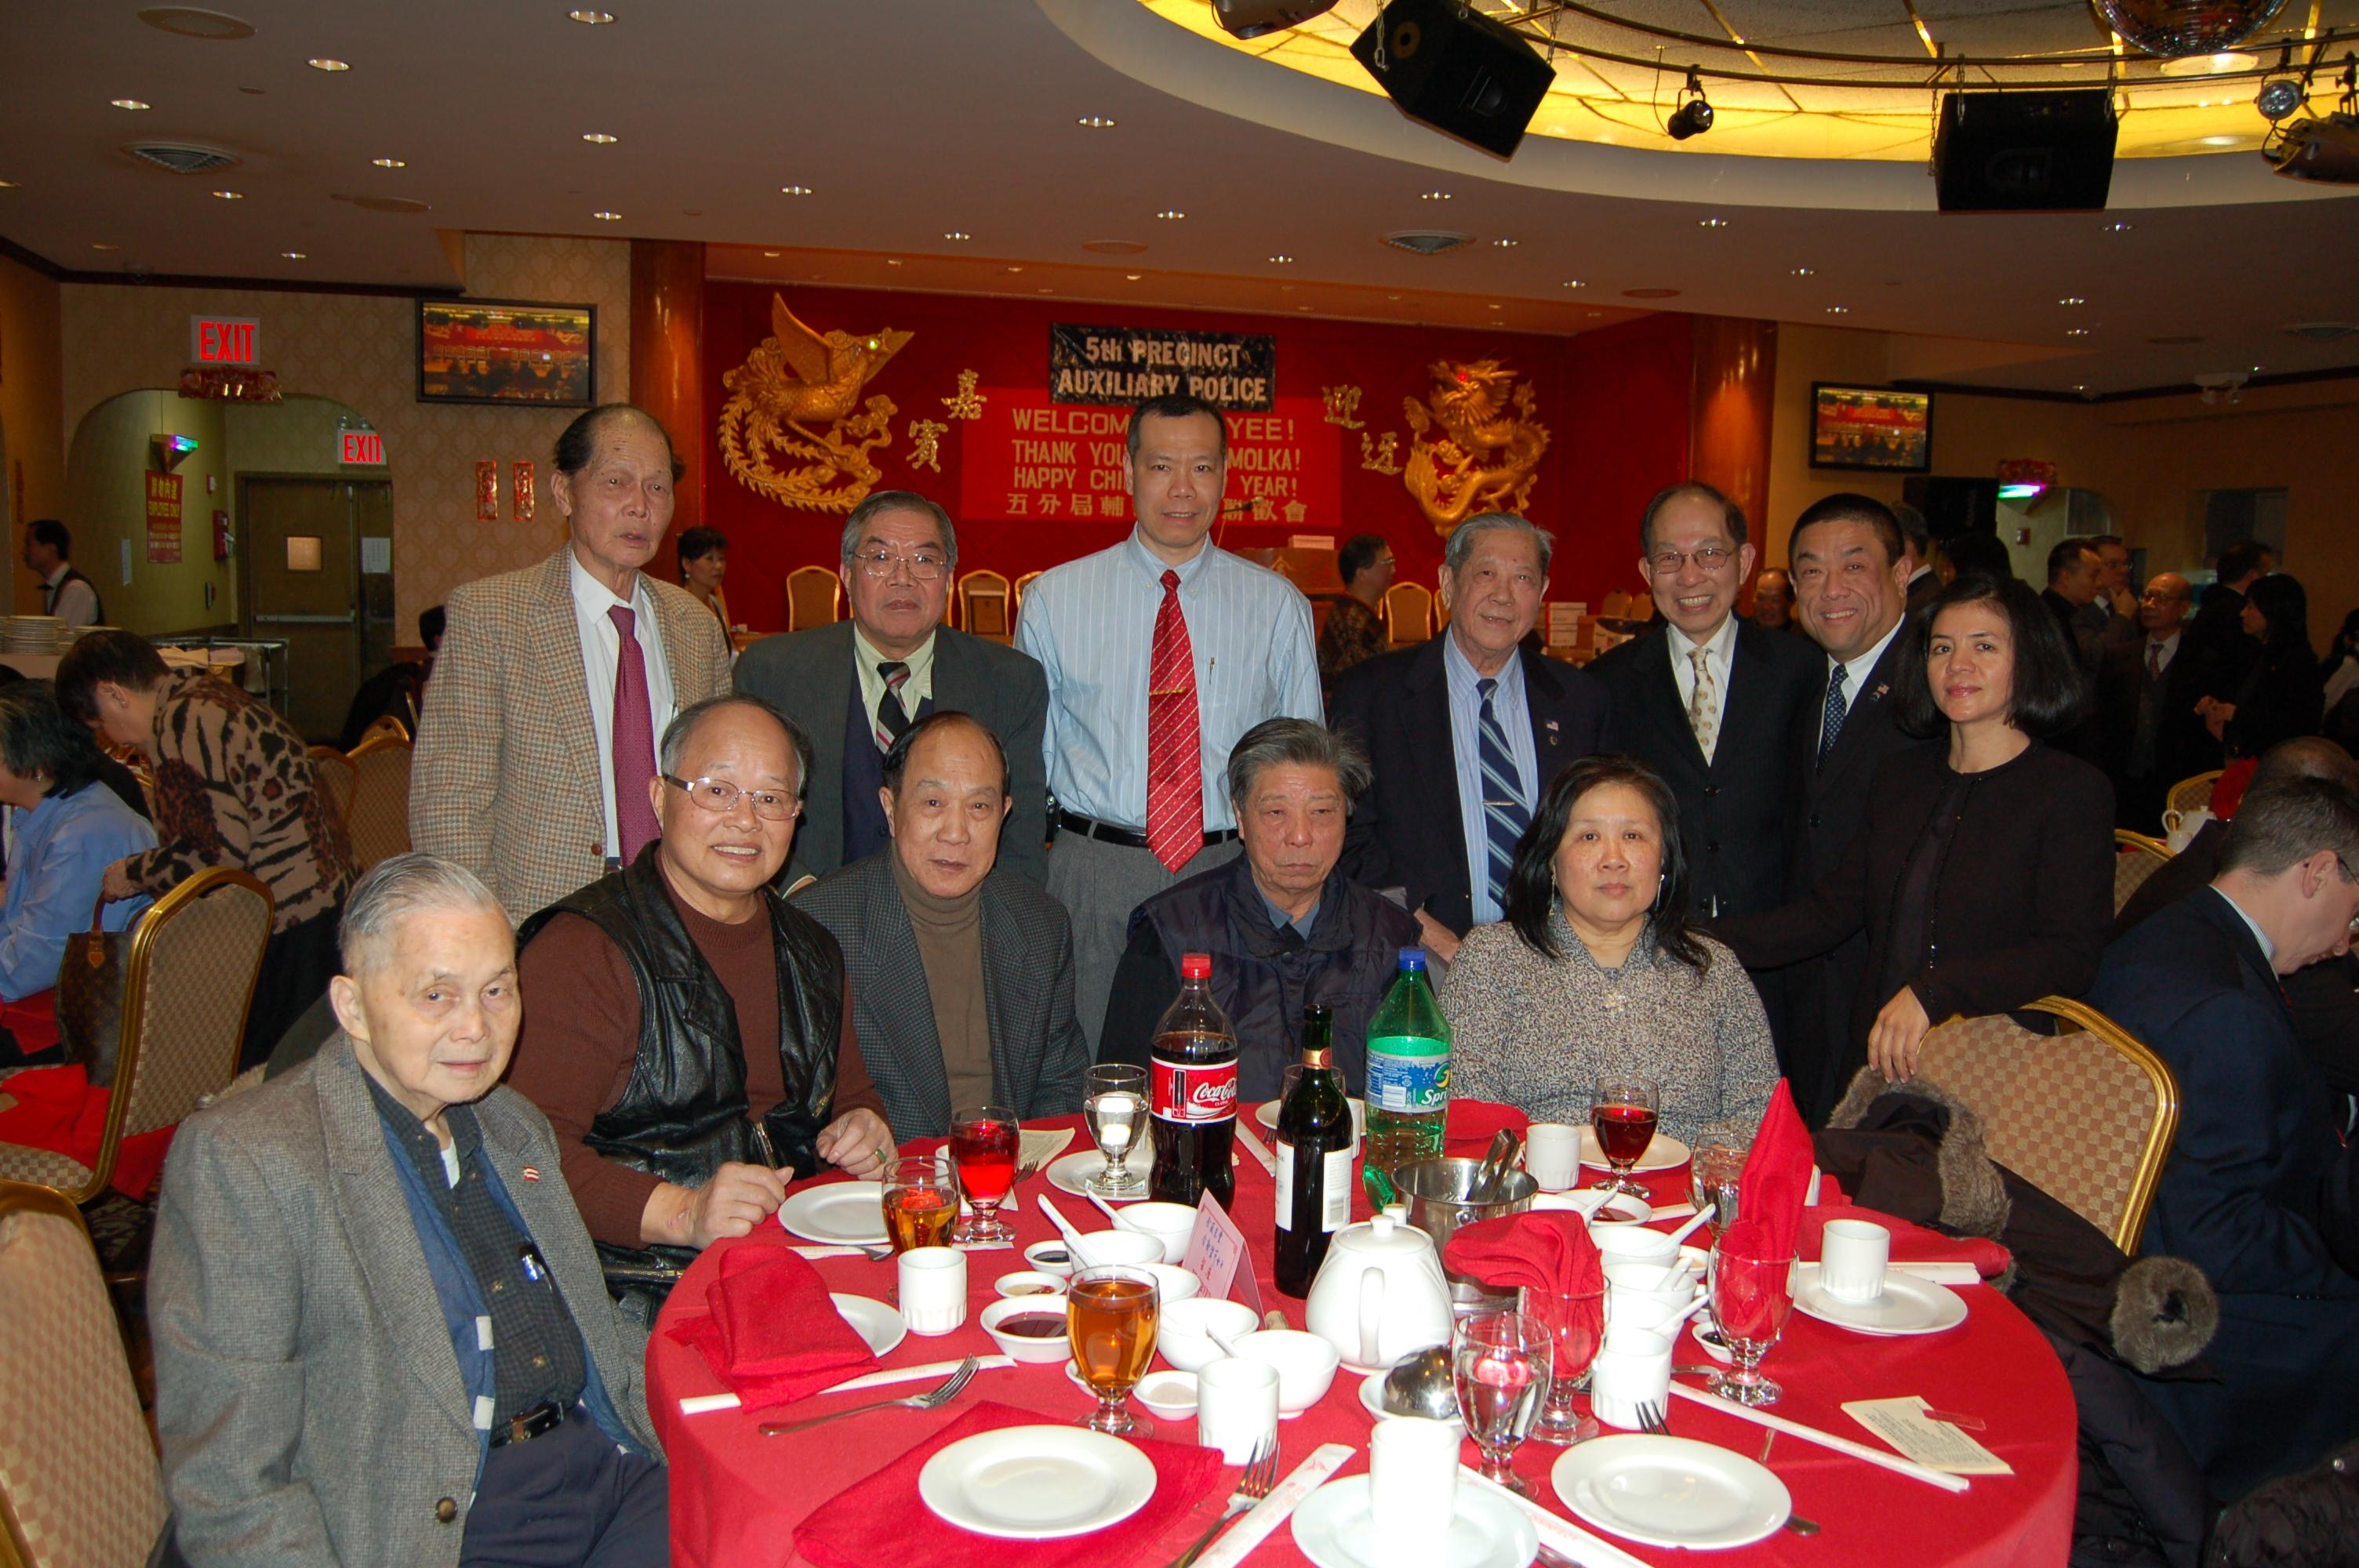 Gin & wife                 Miriam with New York YFT group